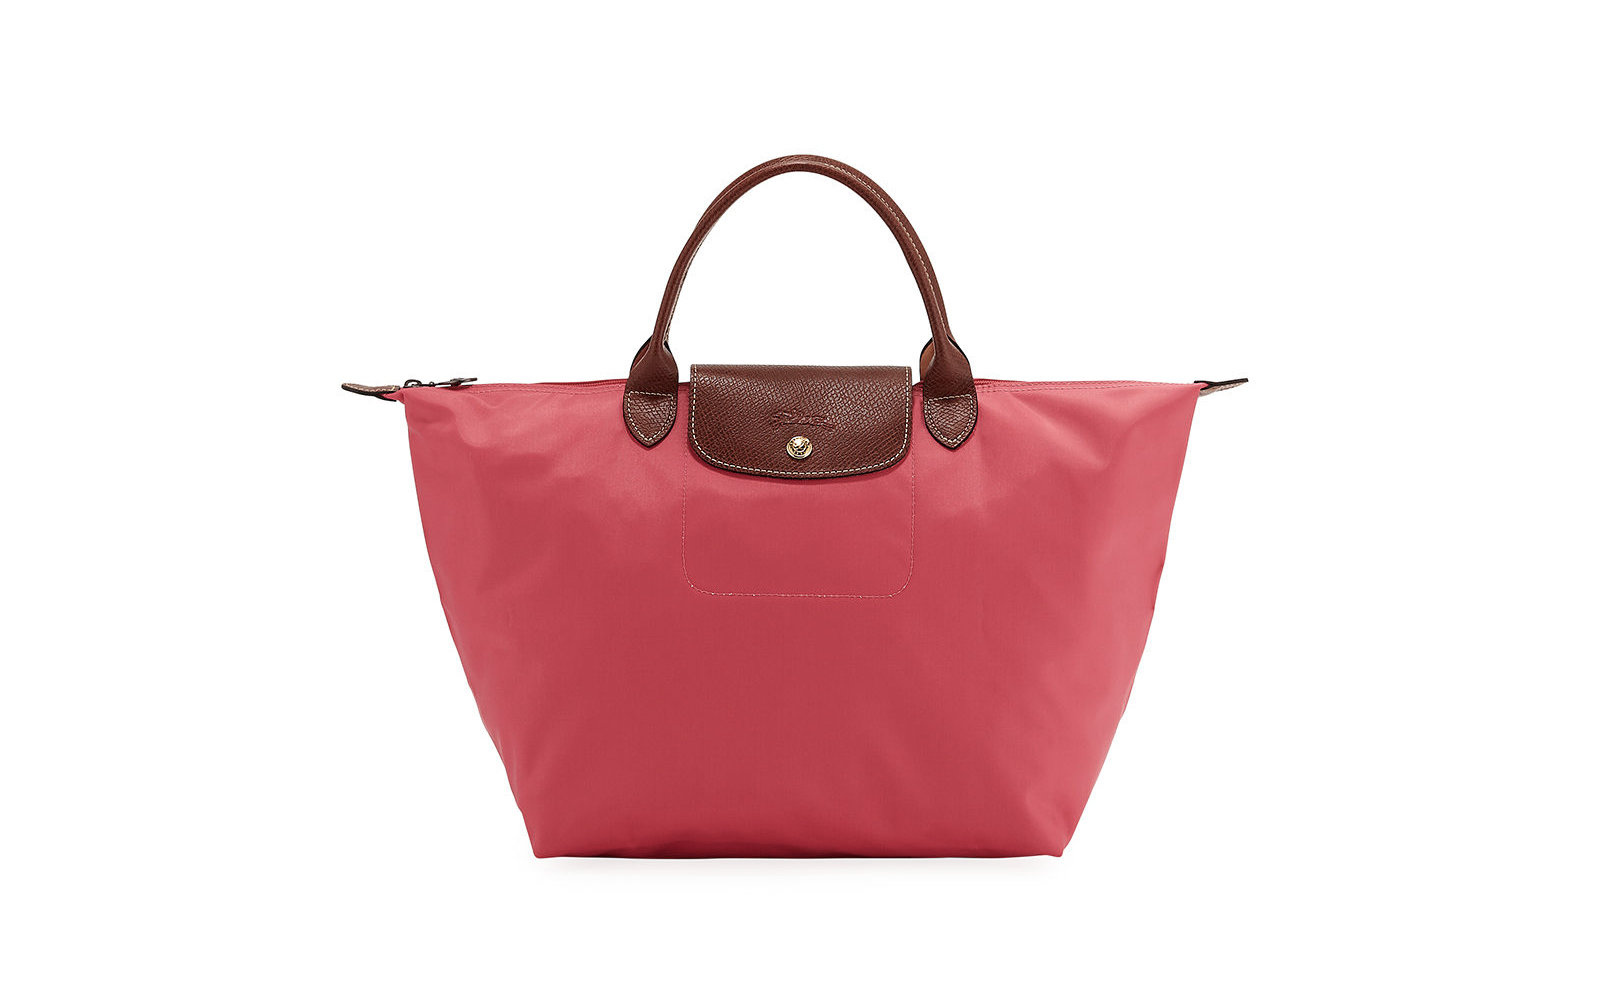 Longchamp Le Pliage Medium Nylon Handbag In Flowersf19